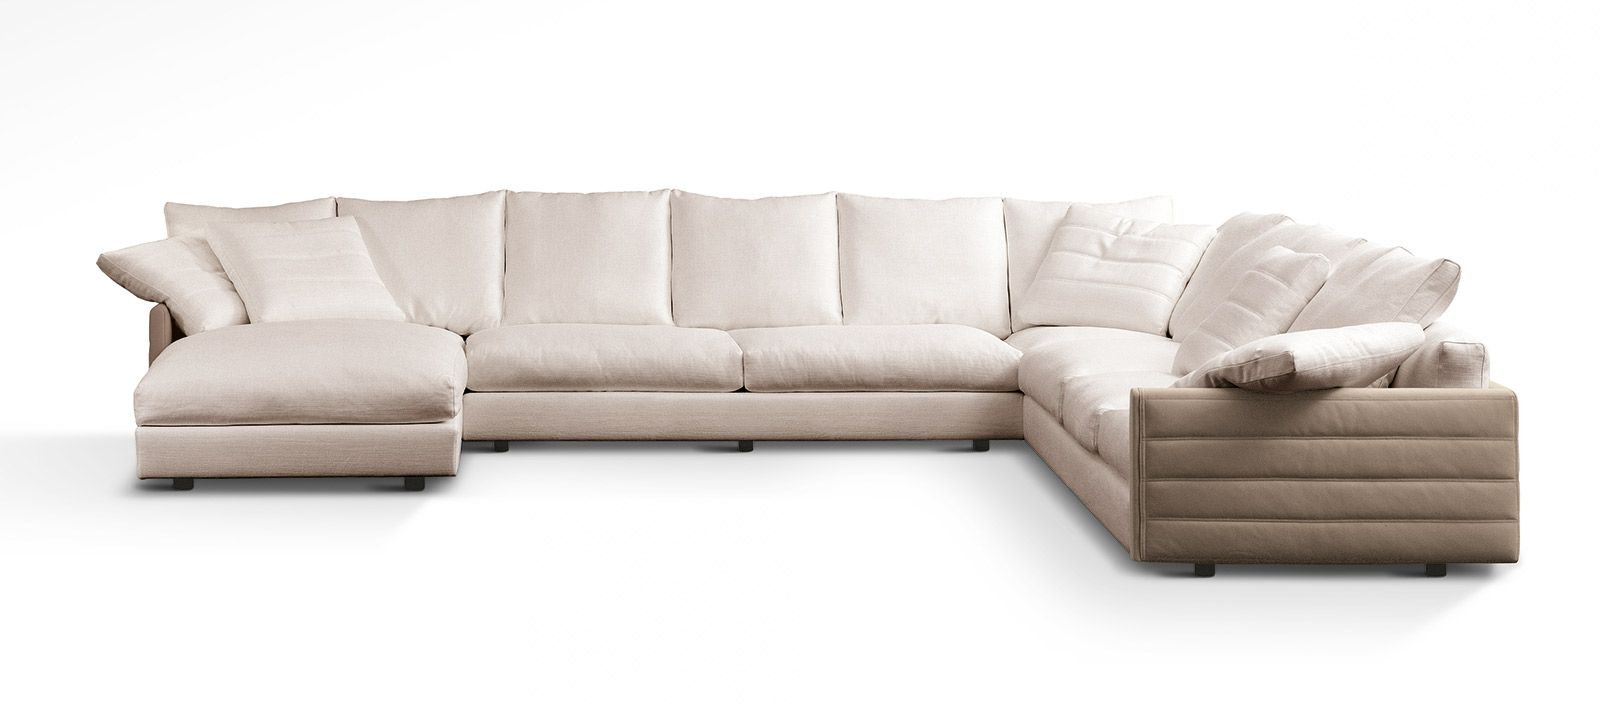 Fesselnde Breites Sofa Referenz Von Giorgetti, Made In Italy: Wally Sofa, Project